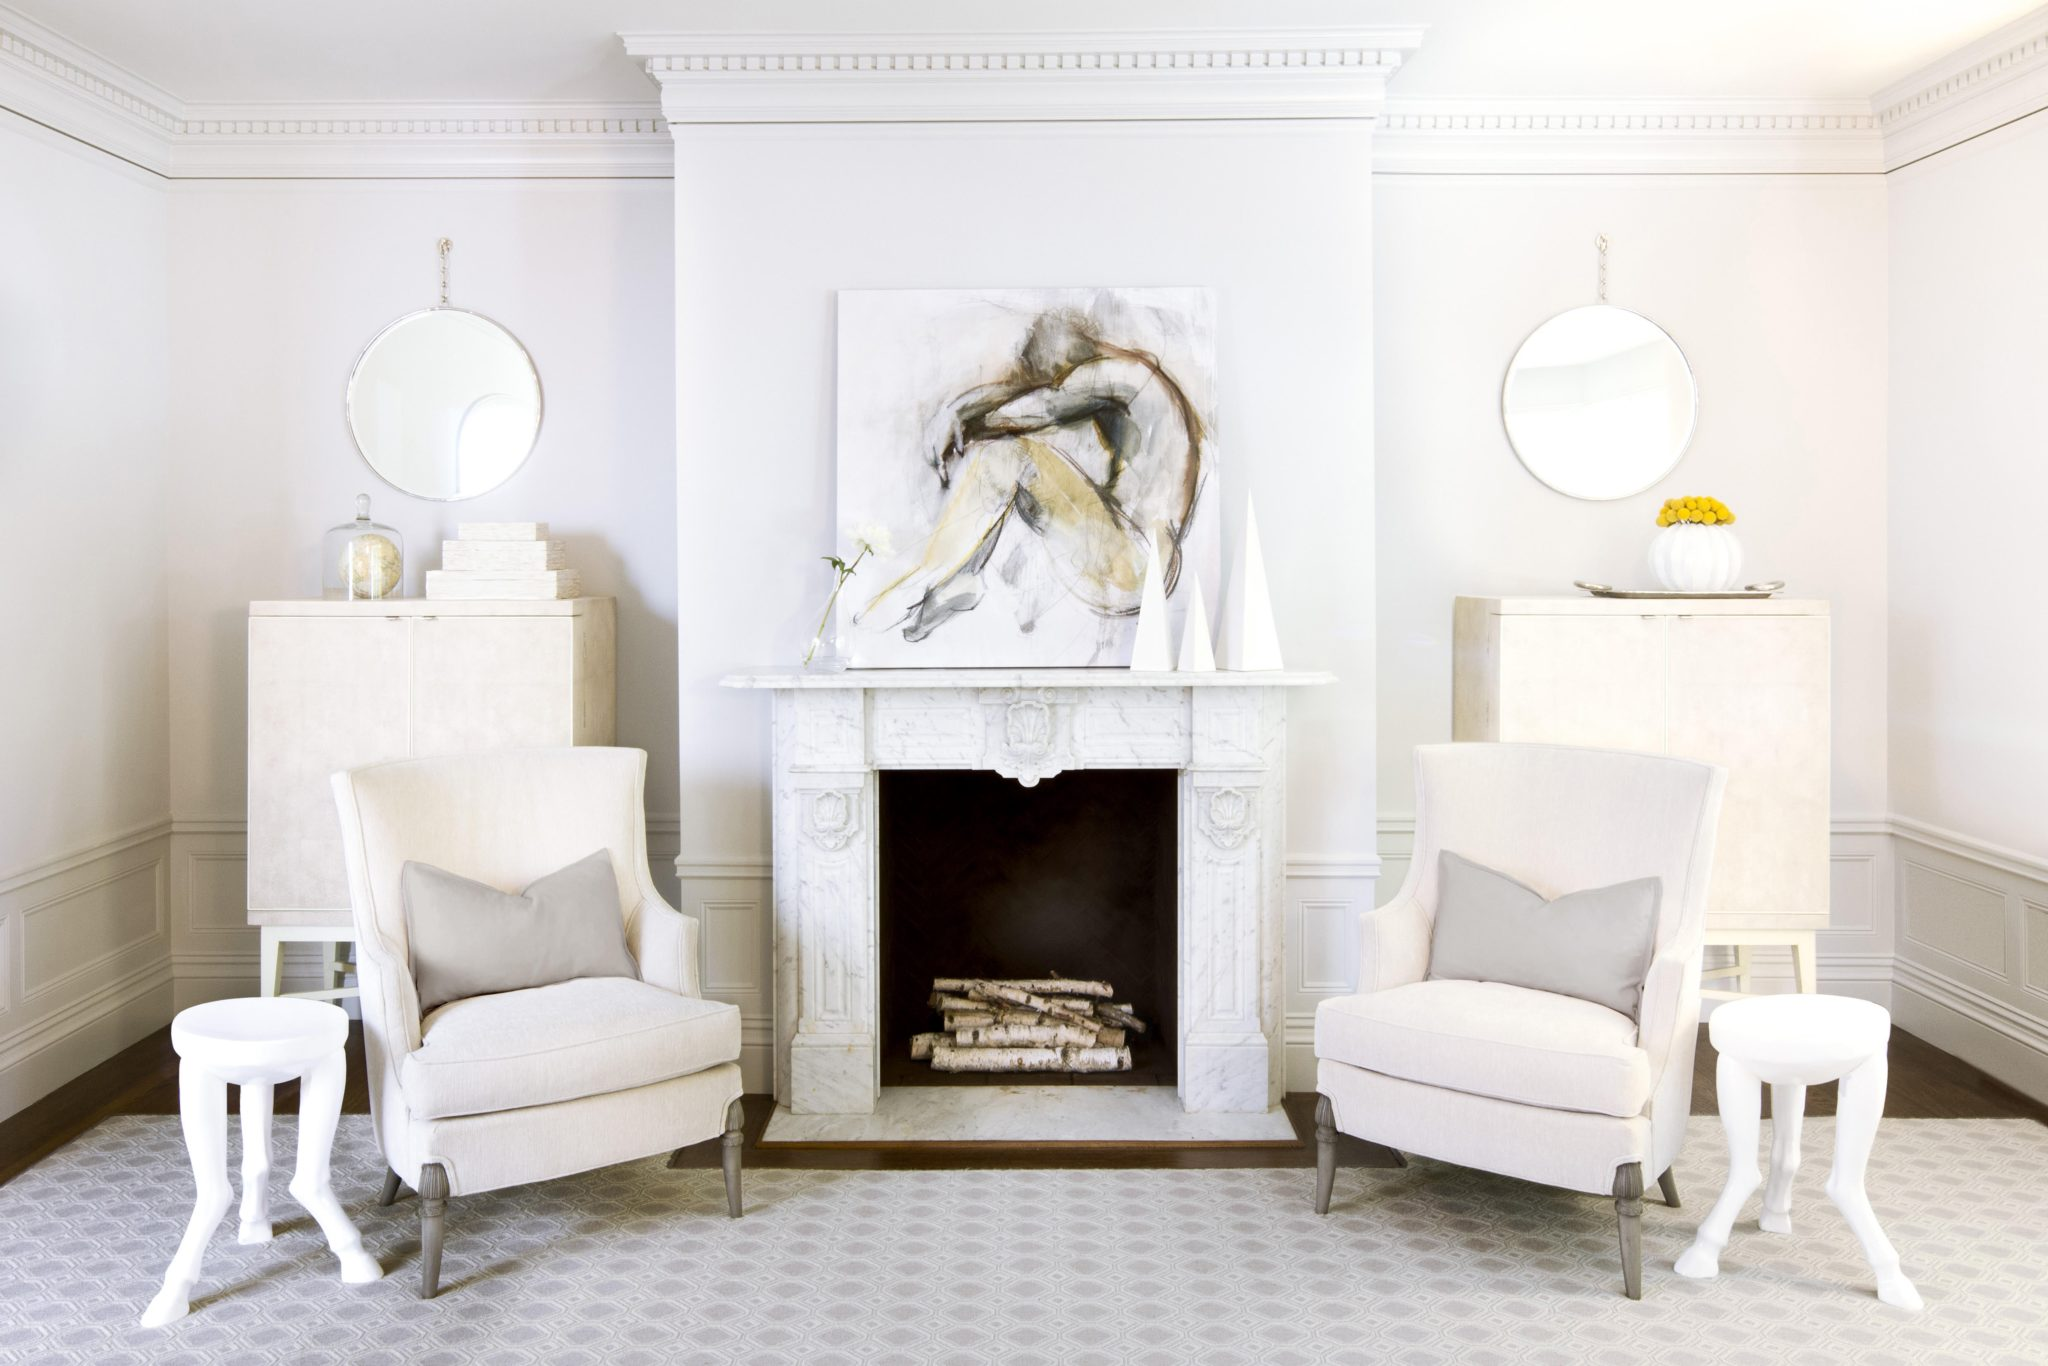 Fireplace seating area with historic moulding. by MAS Design